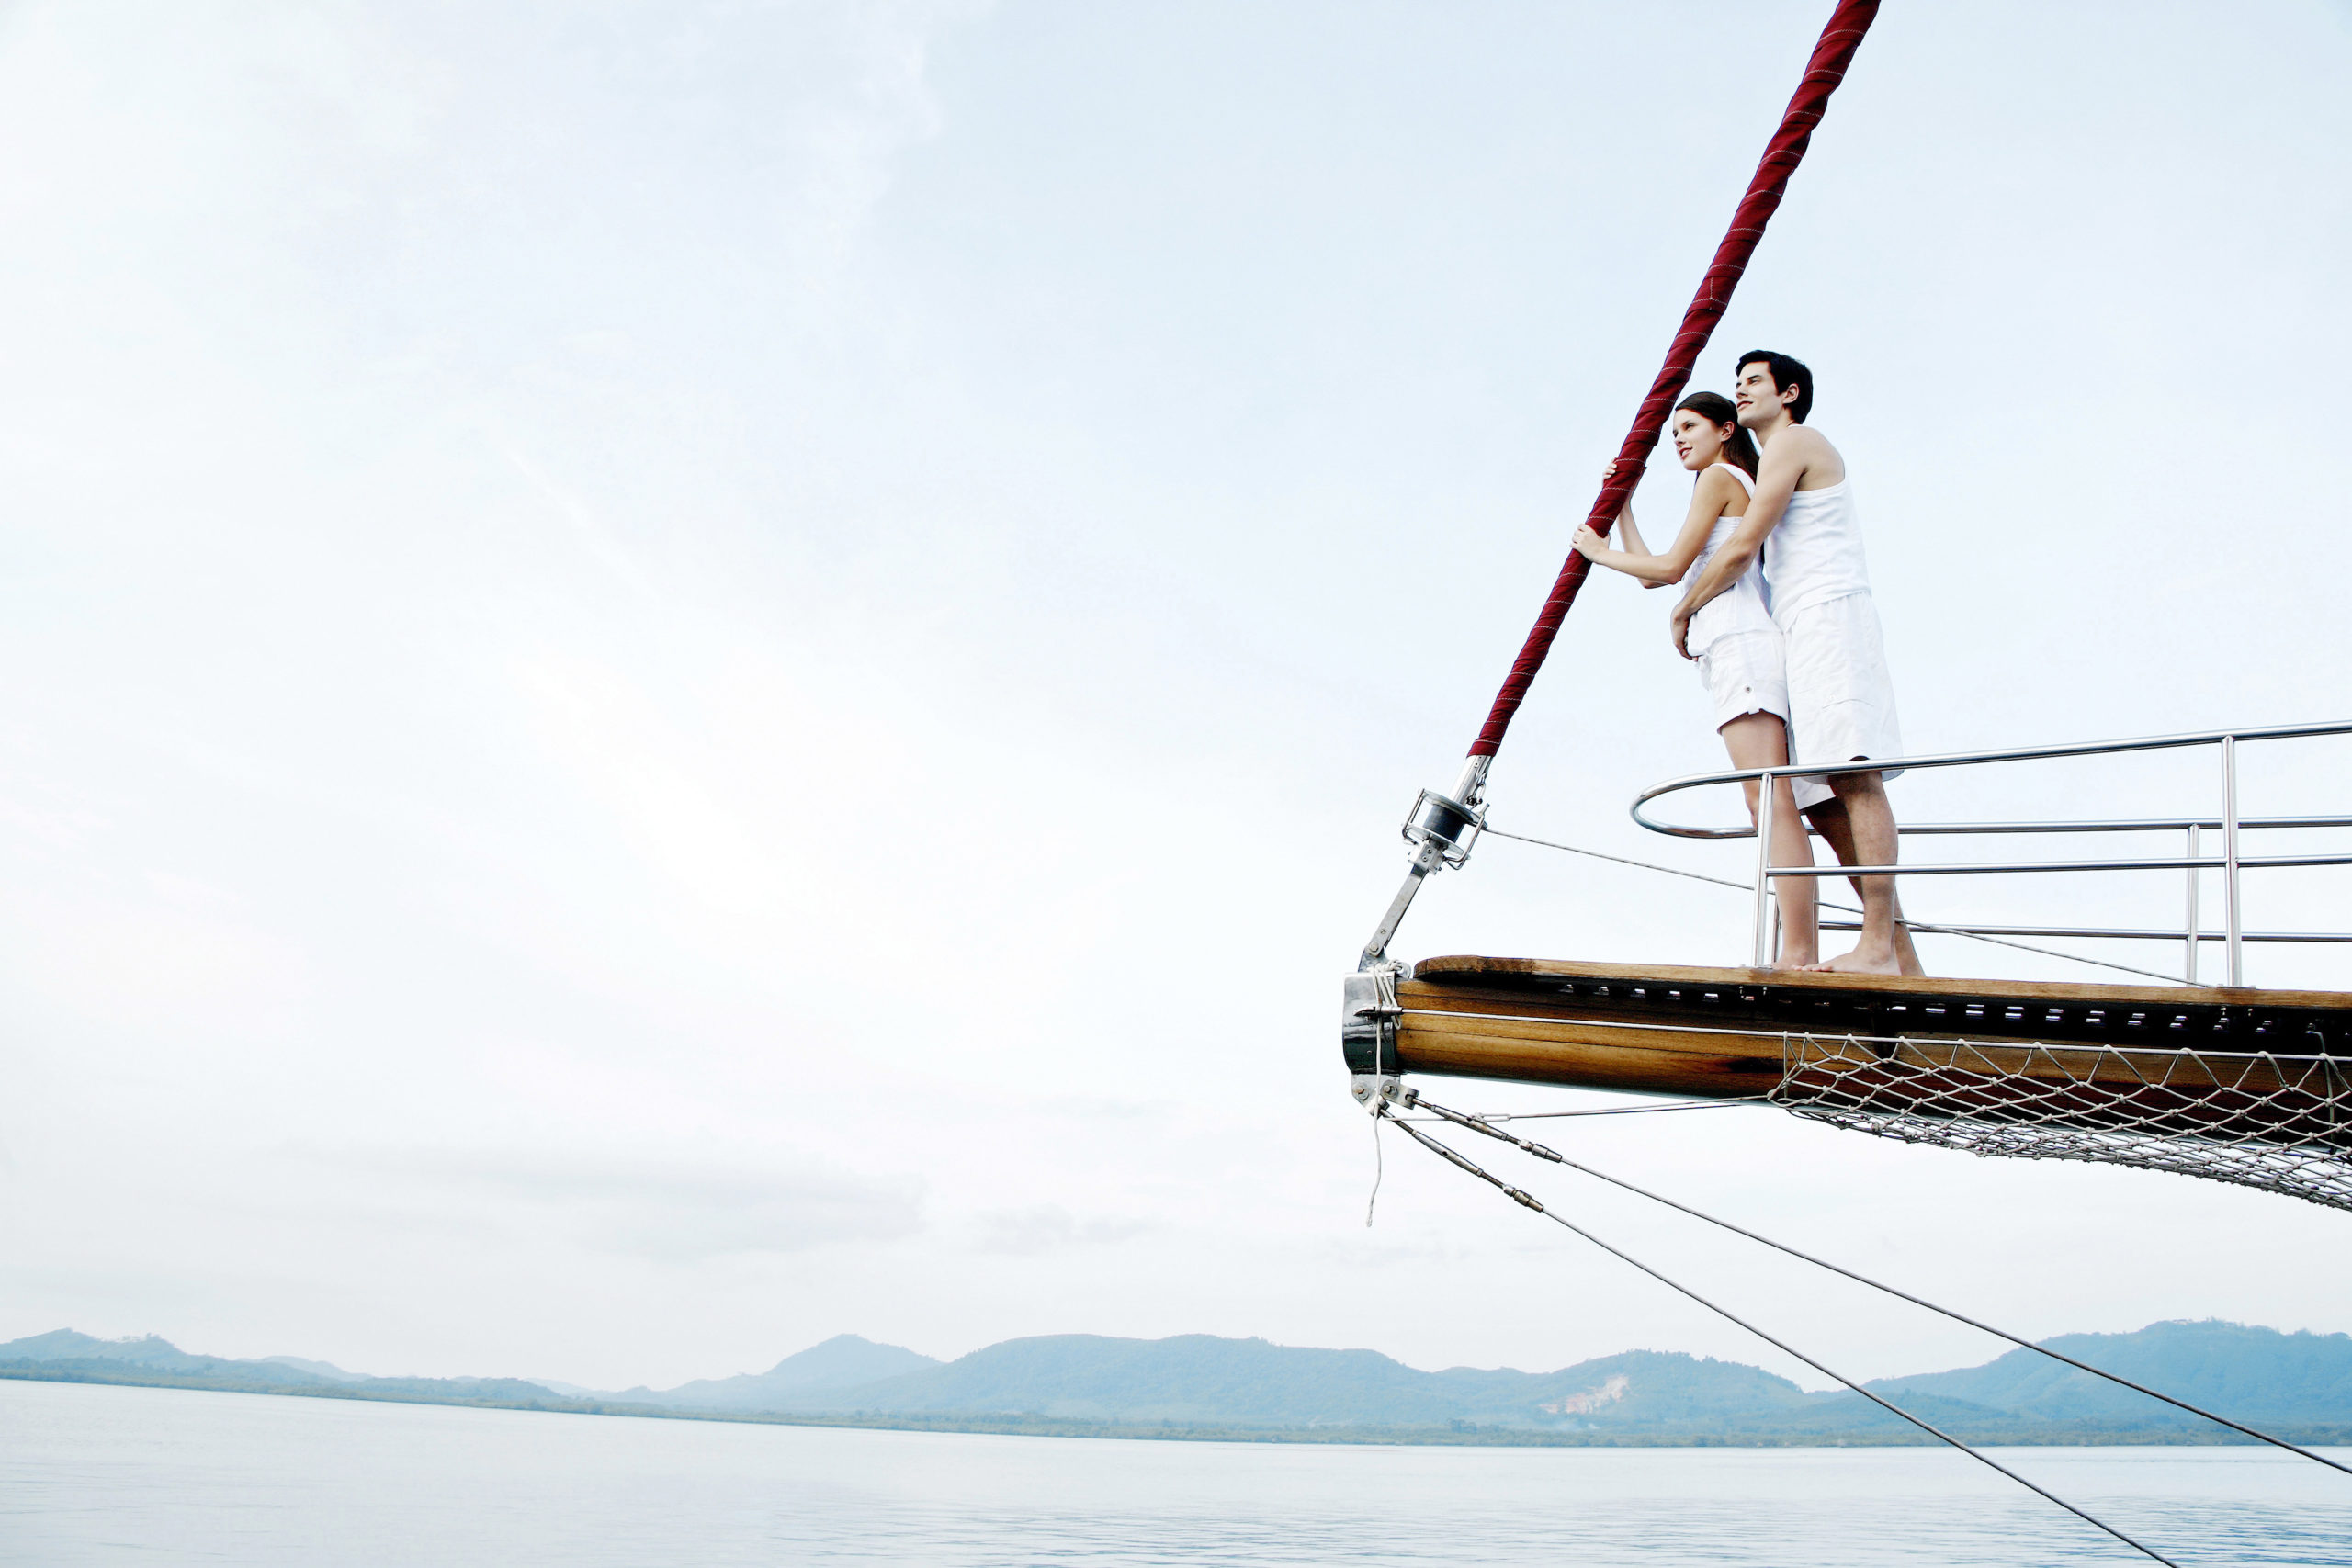 Sailing together can be a fun romantic getaway.